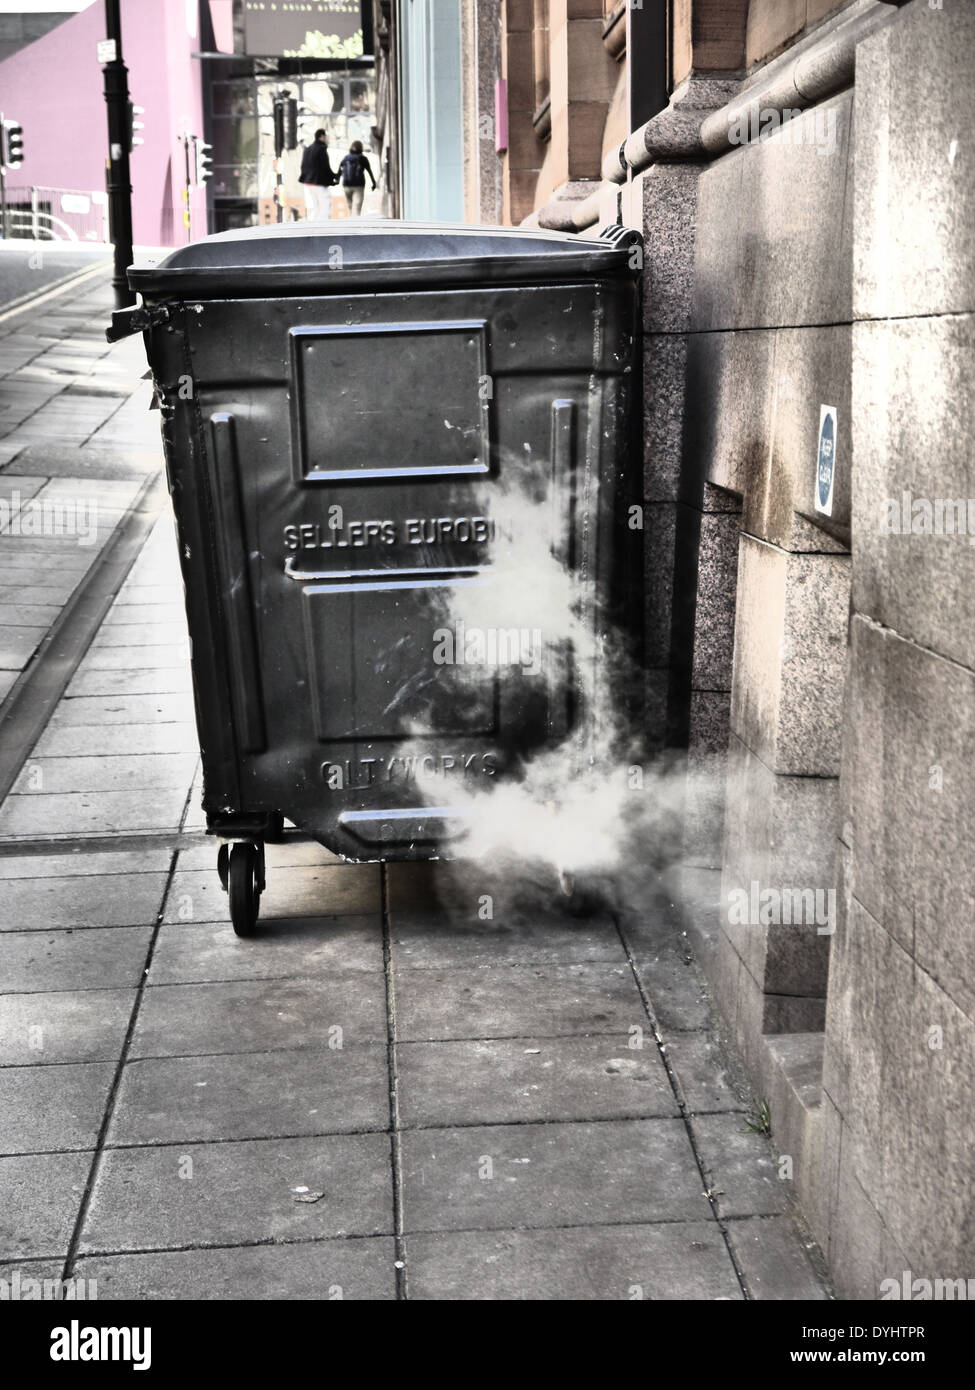 Creative / artistic photographic image of wheelie refuse bin and steam vent in City street, Newcastle upon Tyne, England, UK - Stock Image